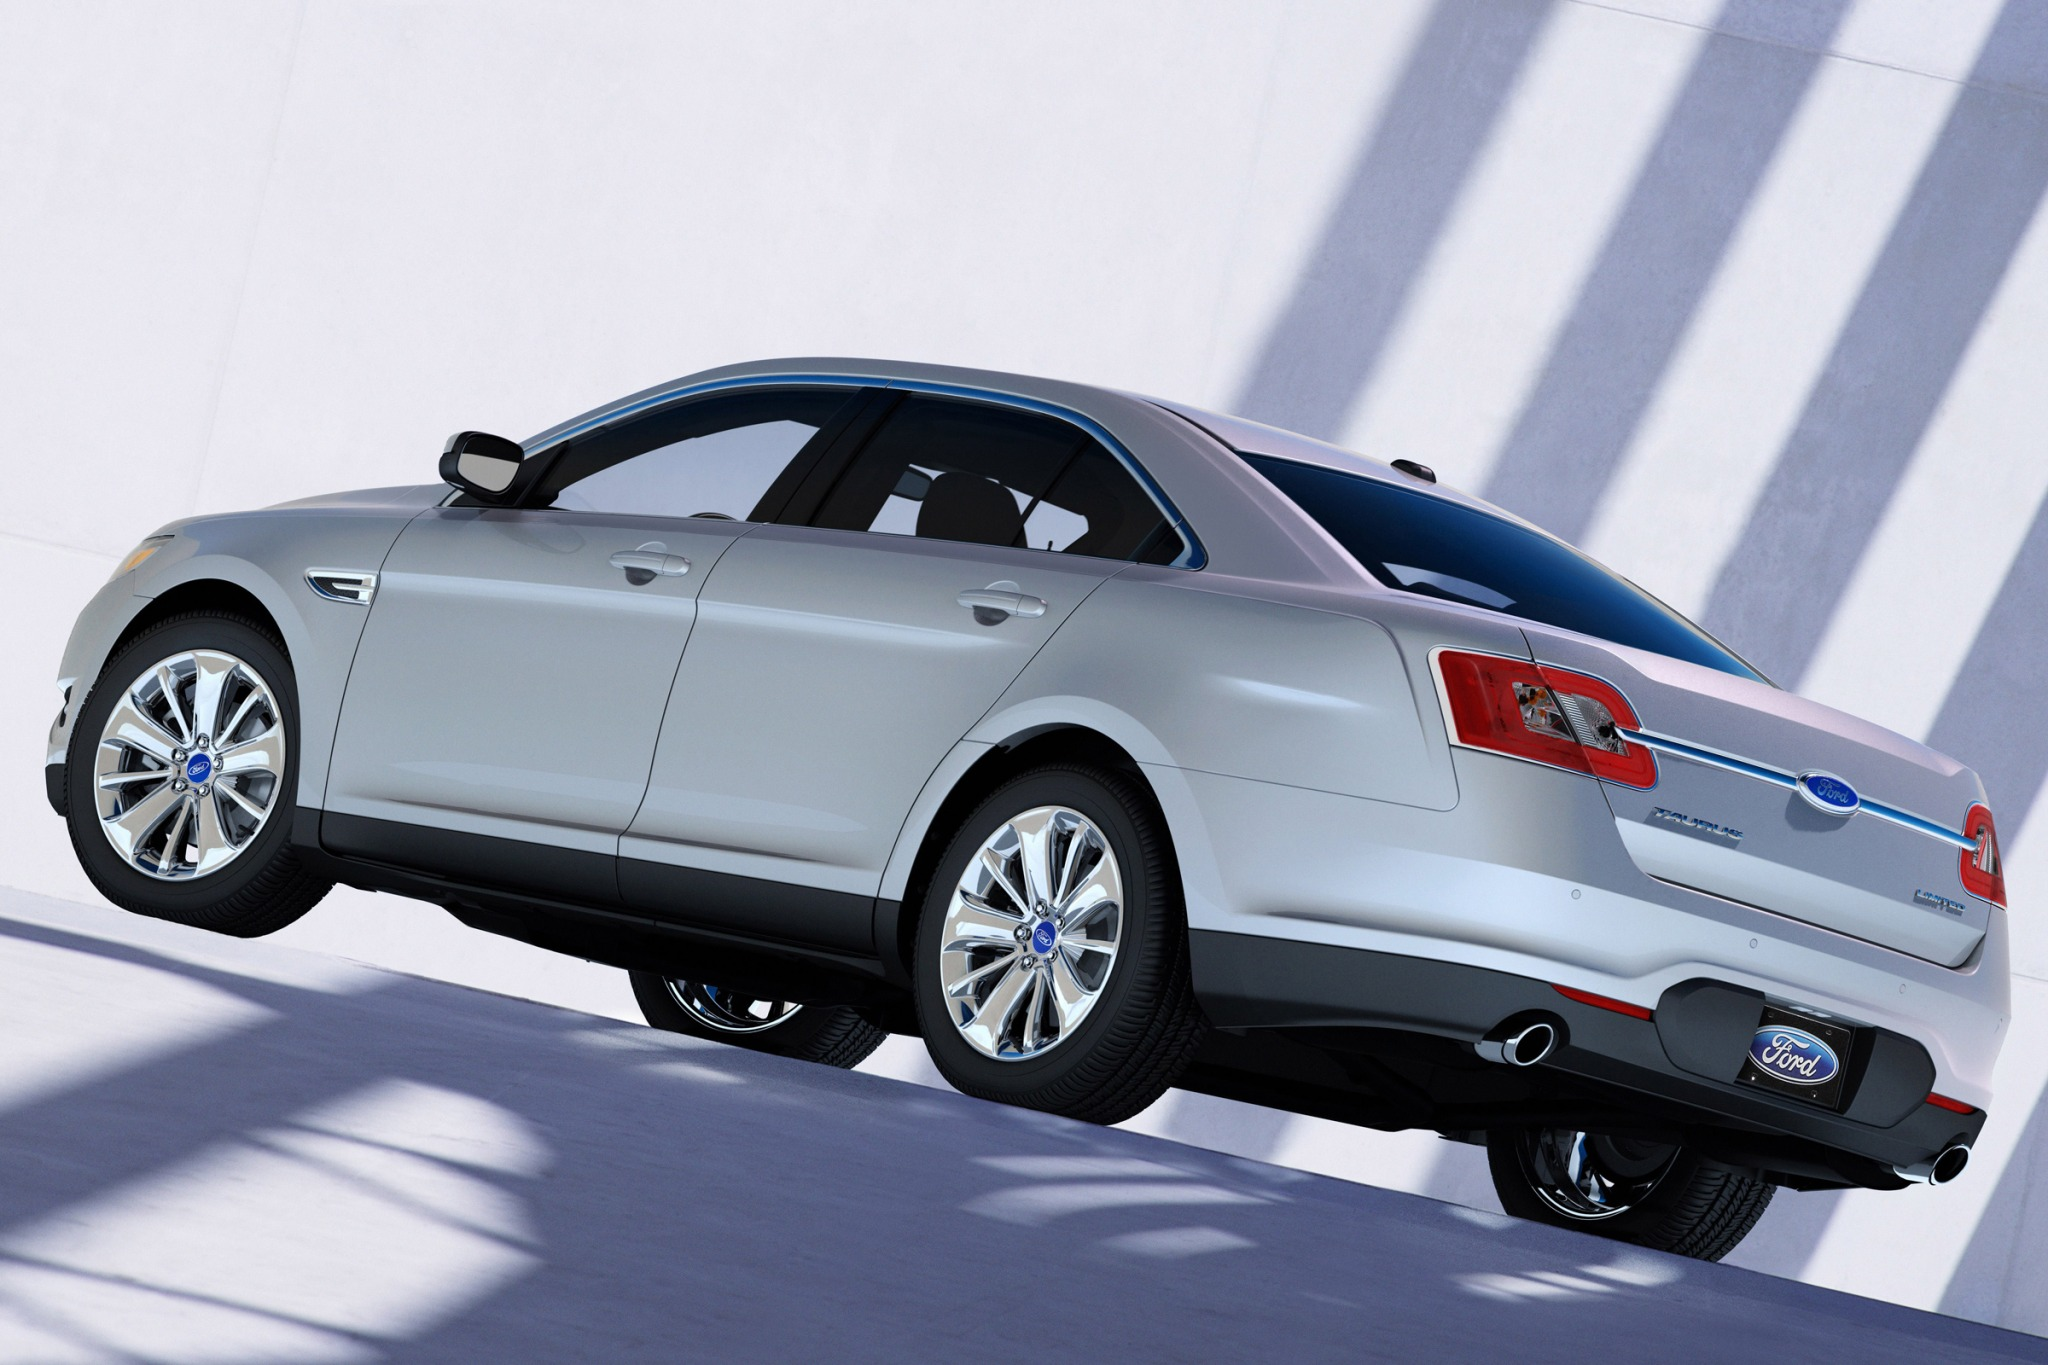 2010 Ford Taurus Limited  exterior #5